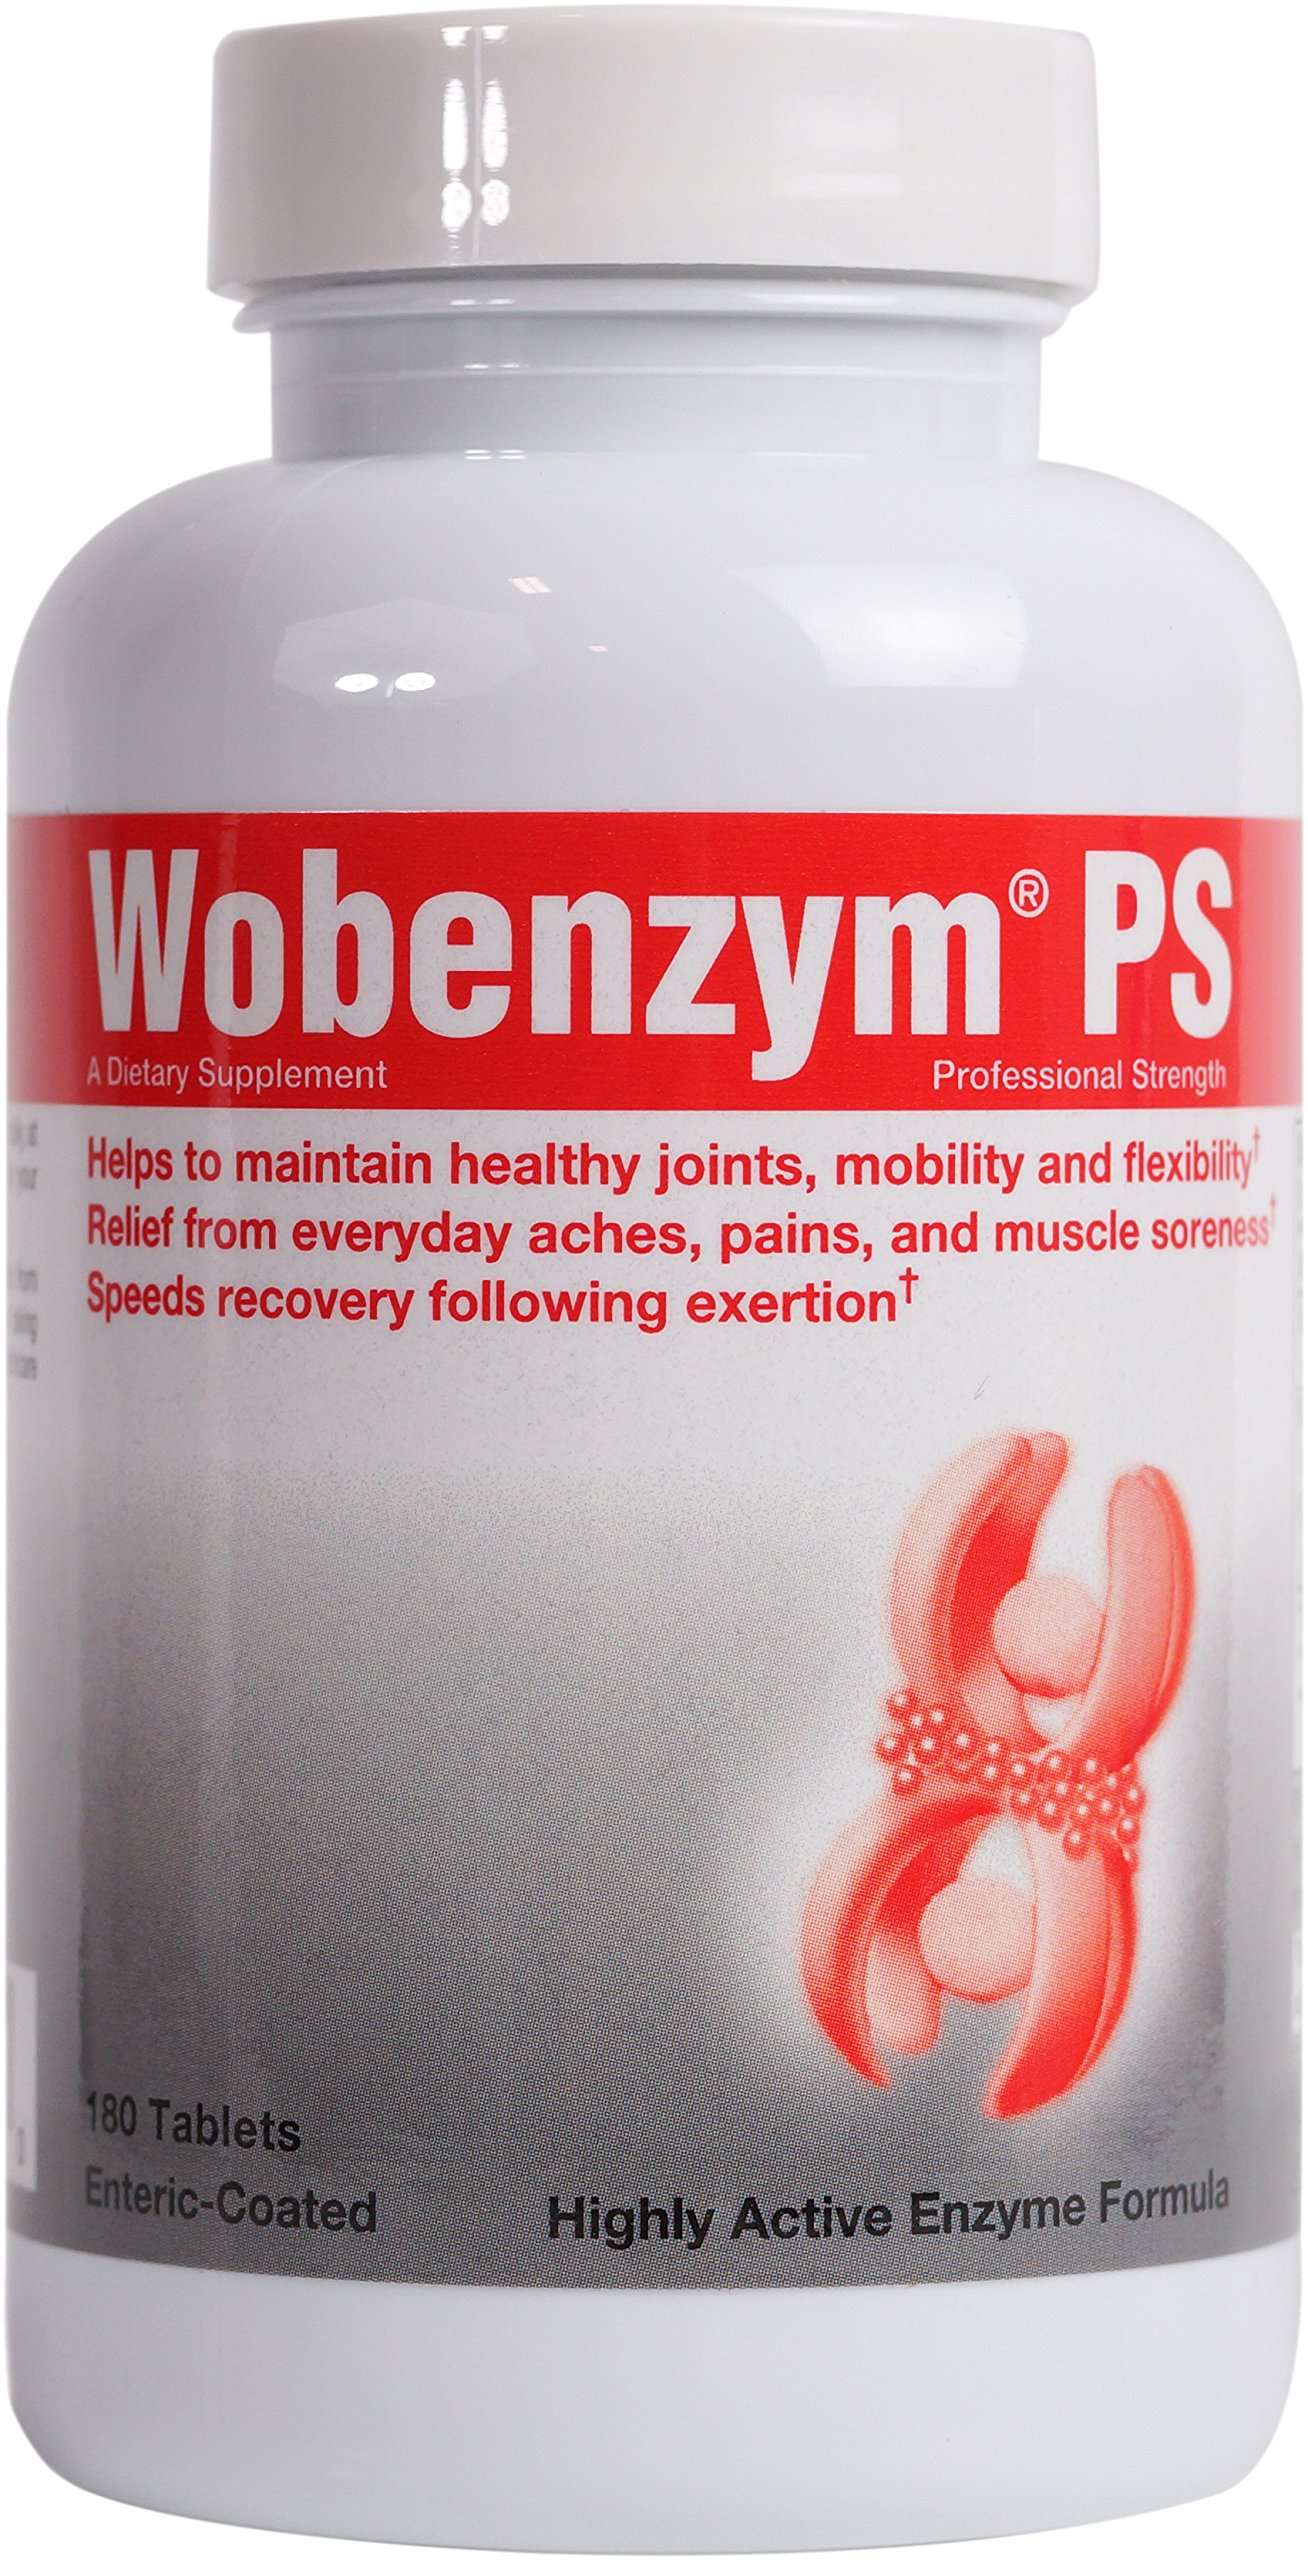 Wobenzym - Wobenzym PS - Helps Maintain Healthy Joints, Mobility, and Flexibility* - 180 Tablets